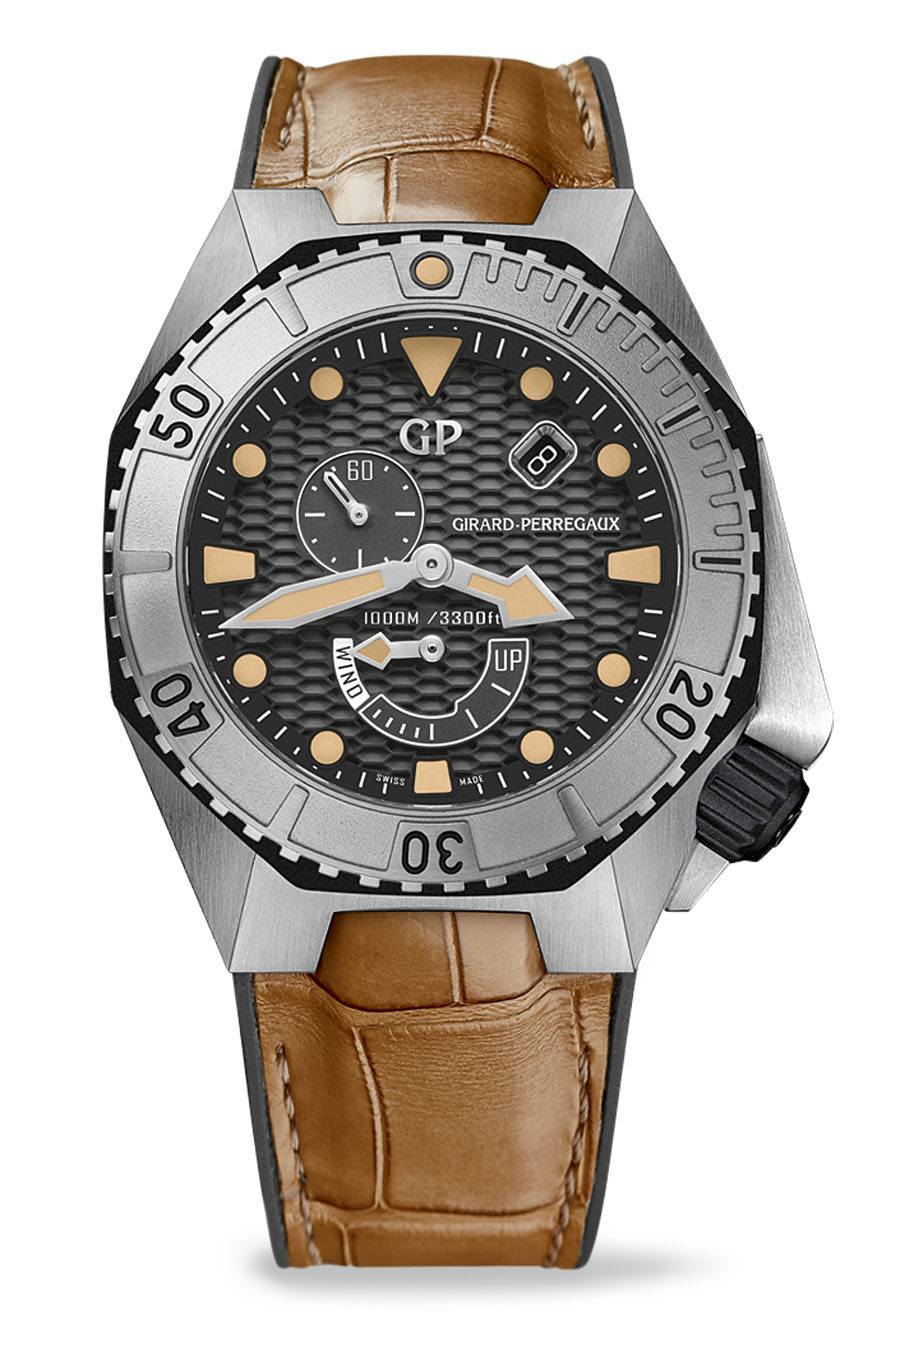 Taucheruhr 2015: Girard-Perregaux Sea-Hawk